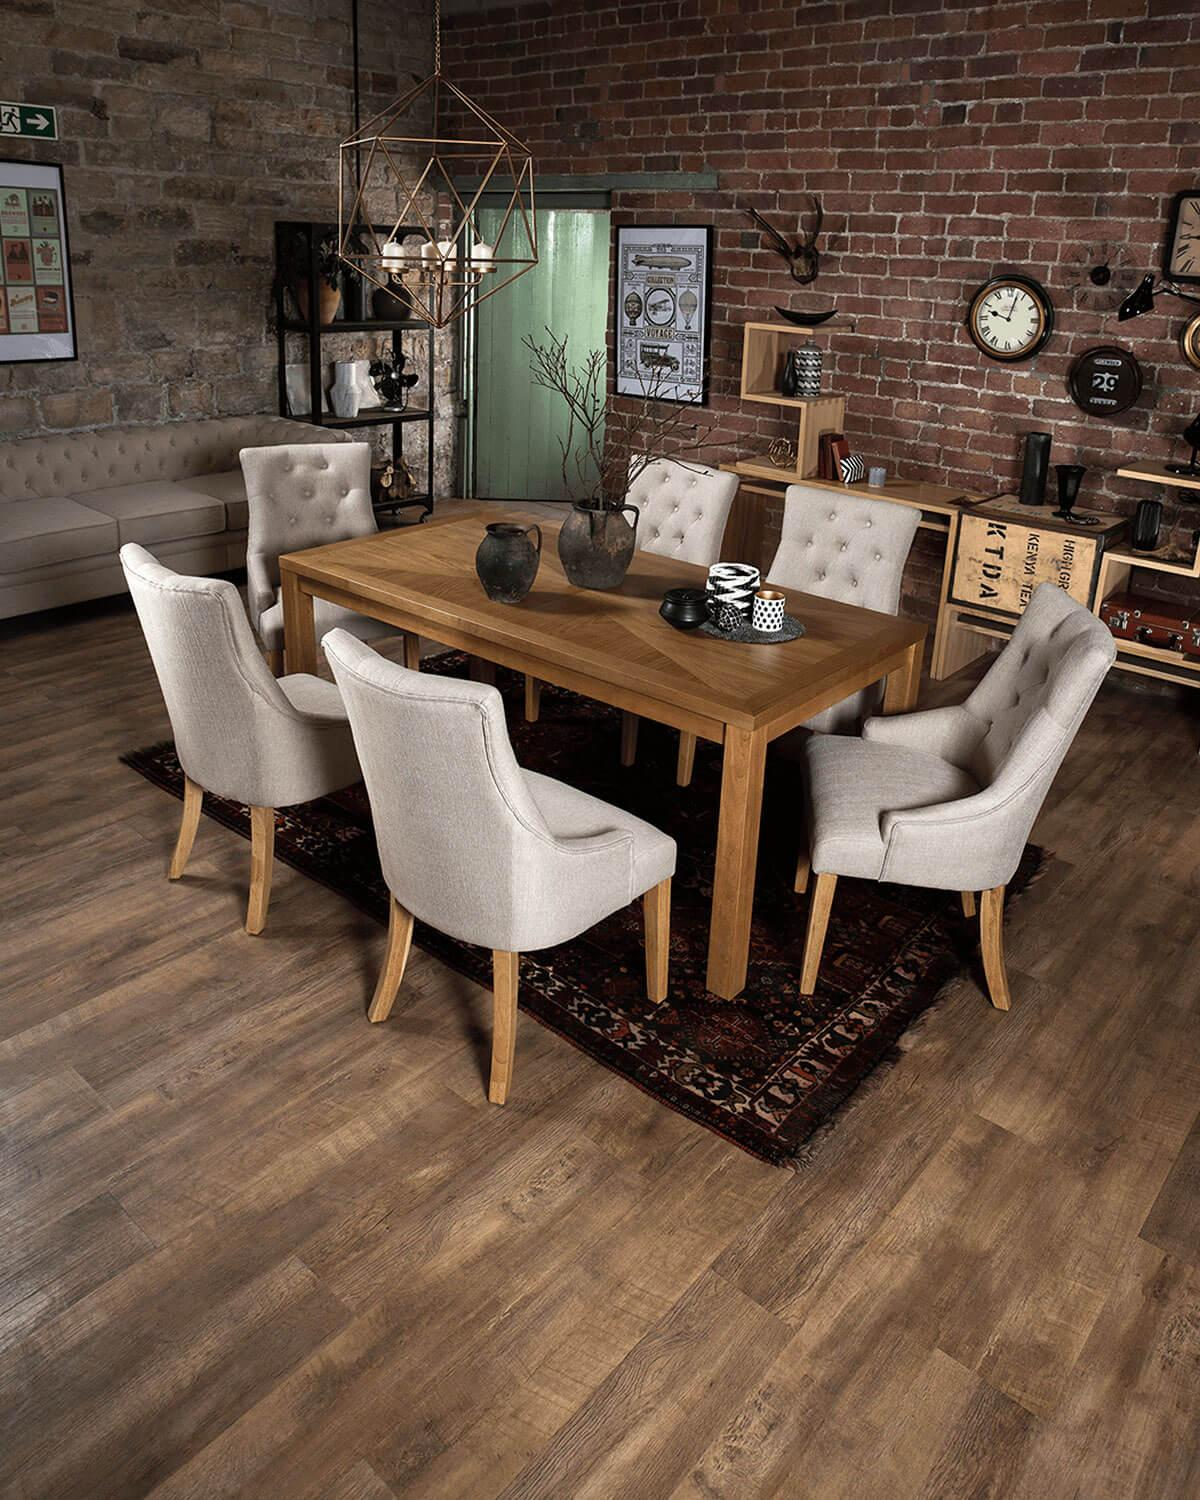 Union Oak dining table with Duke dining chairs in oatmeal with oak legs